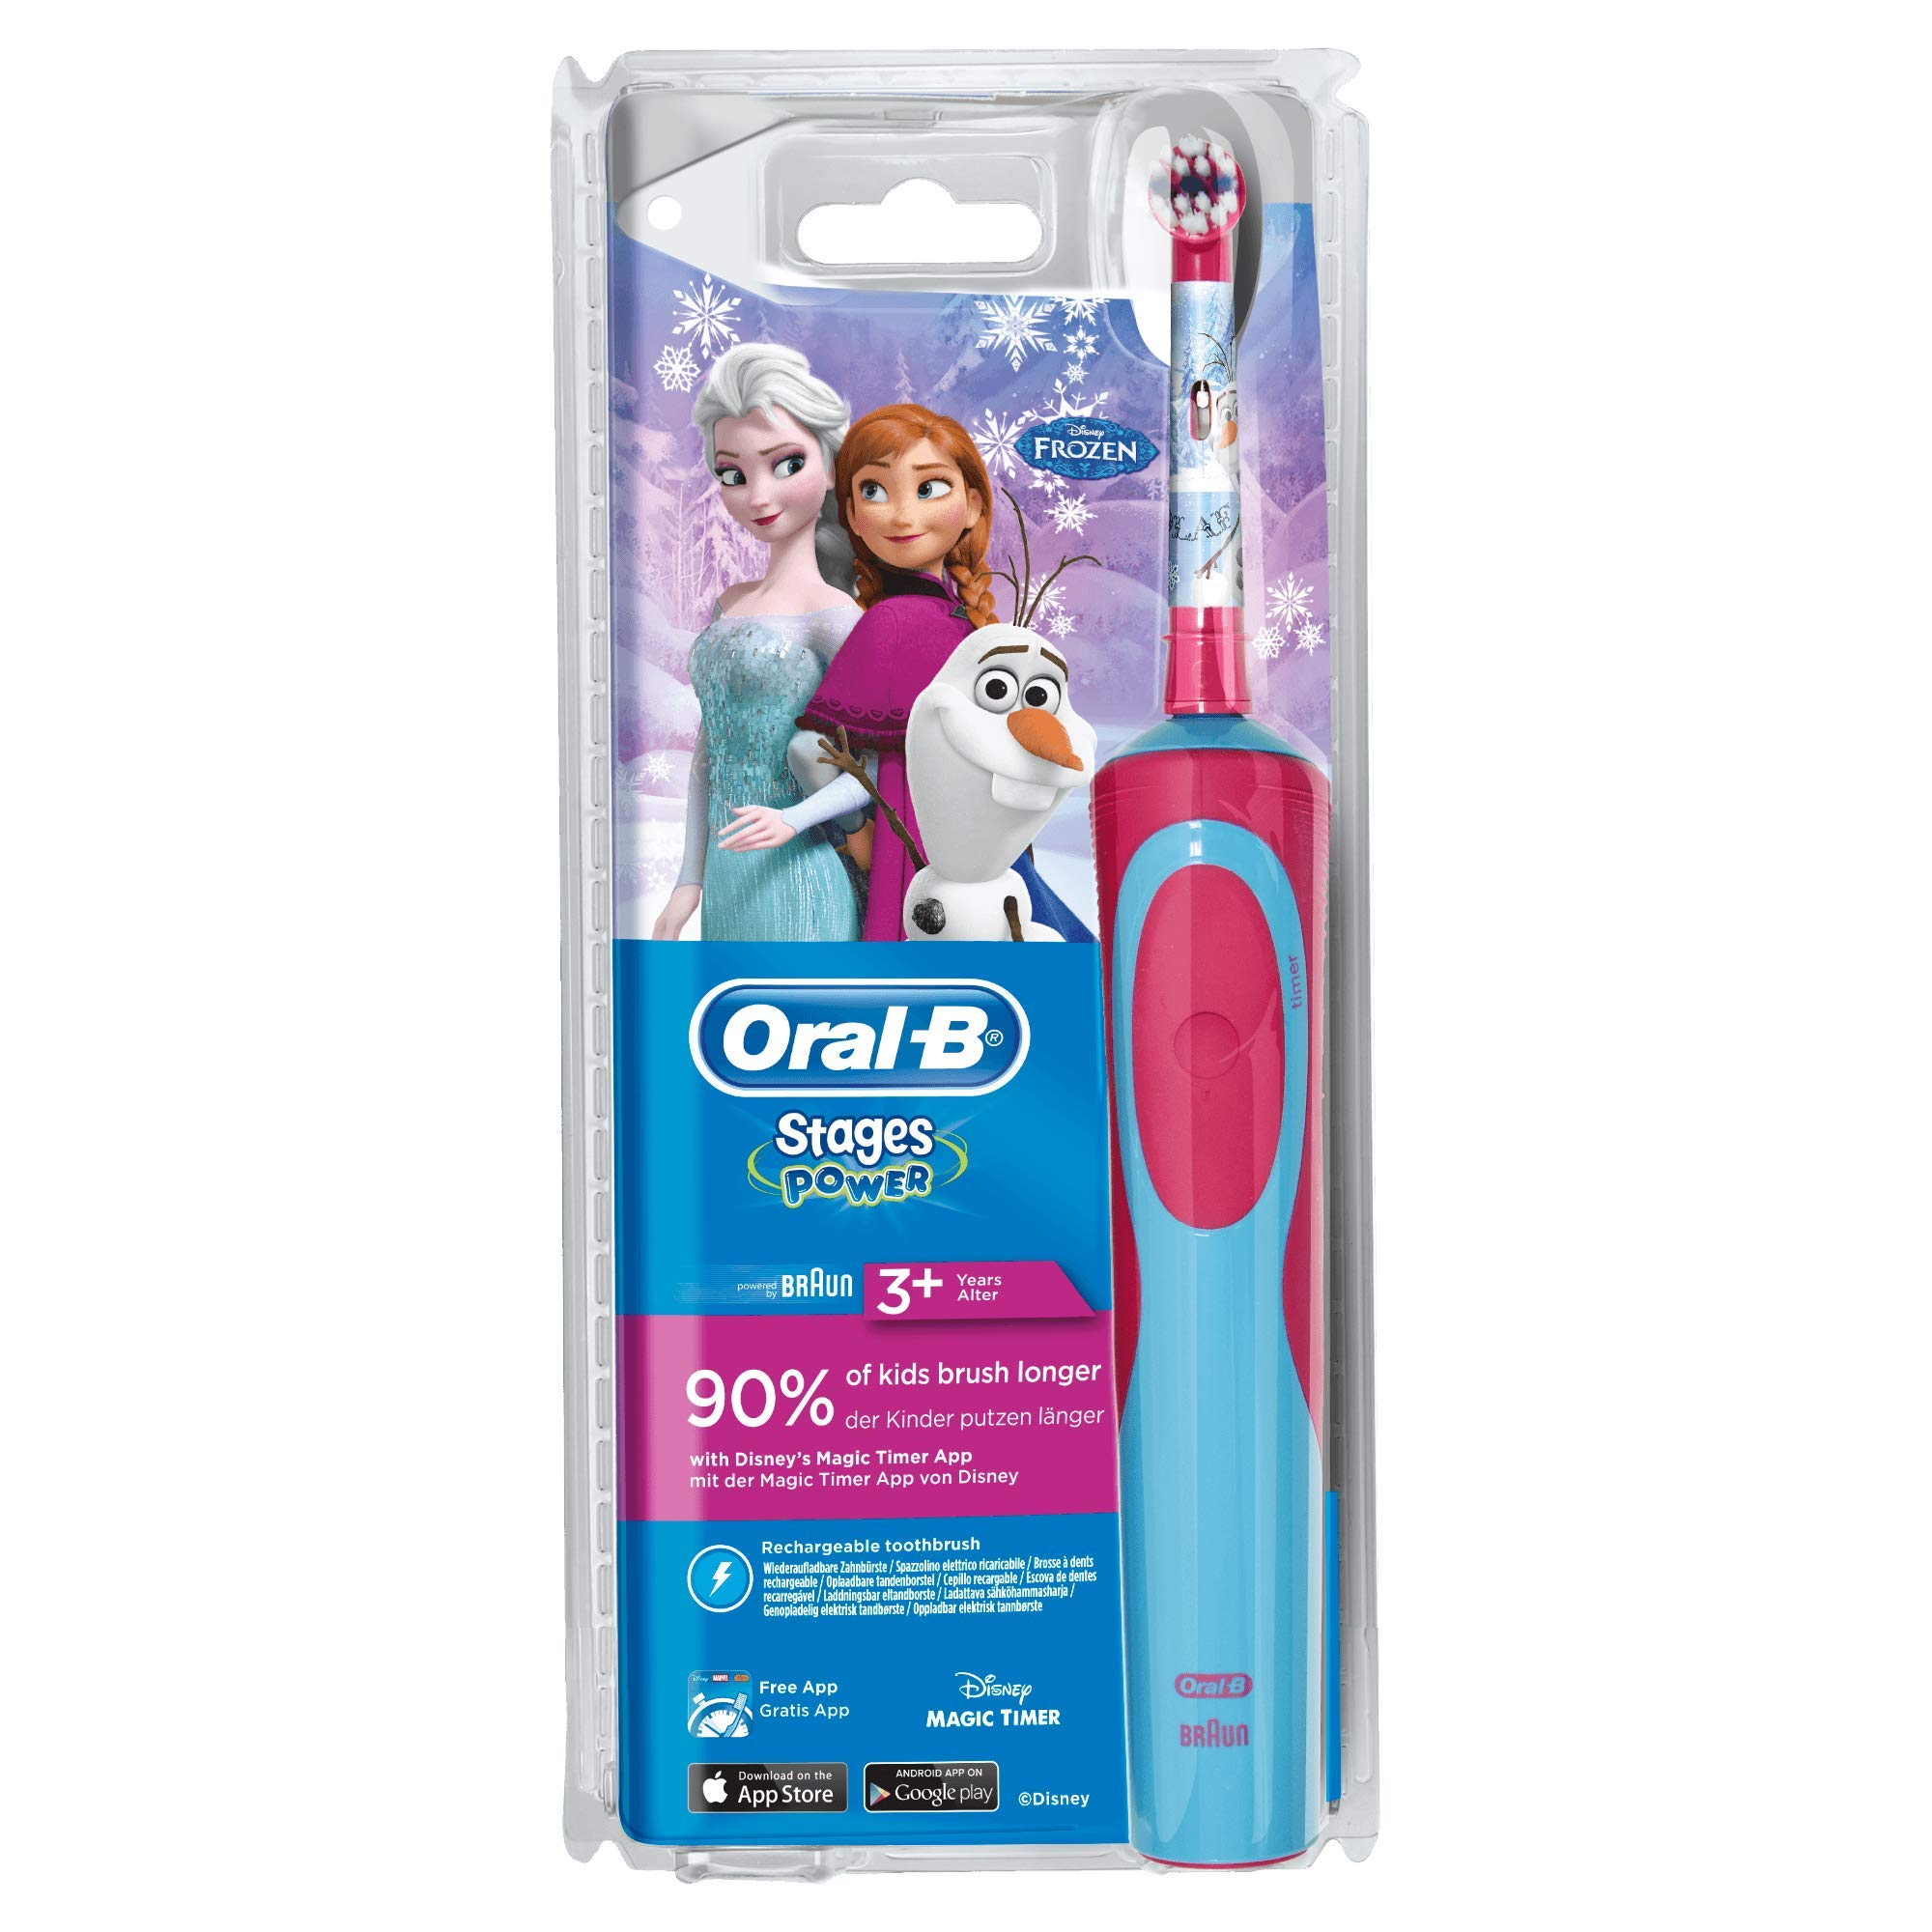 Oral-B Stages Power Kids Cepillo de Dientes Eléctrico con los Personajes de Frozen product image